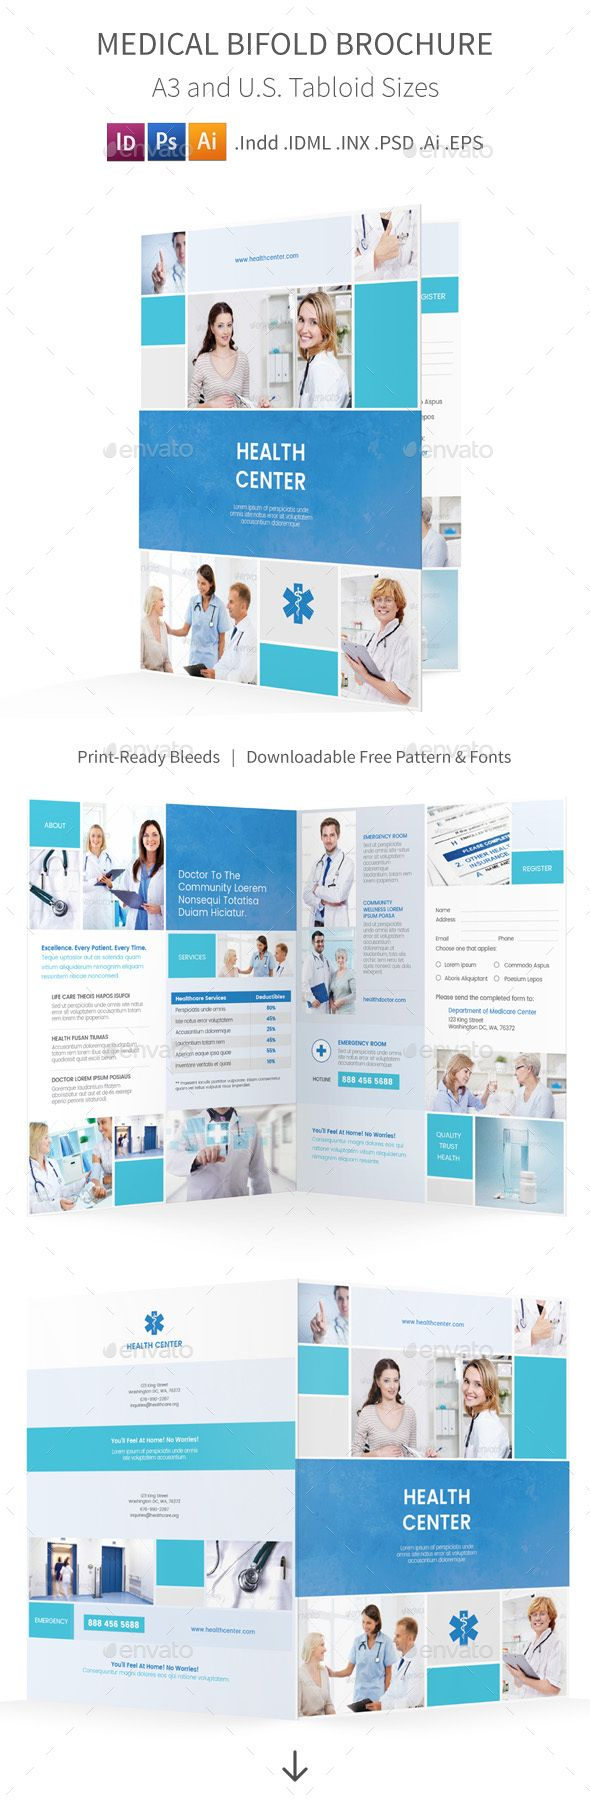 40 best images about top pharmacy brochure designs on for Pharmacy brochure template free